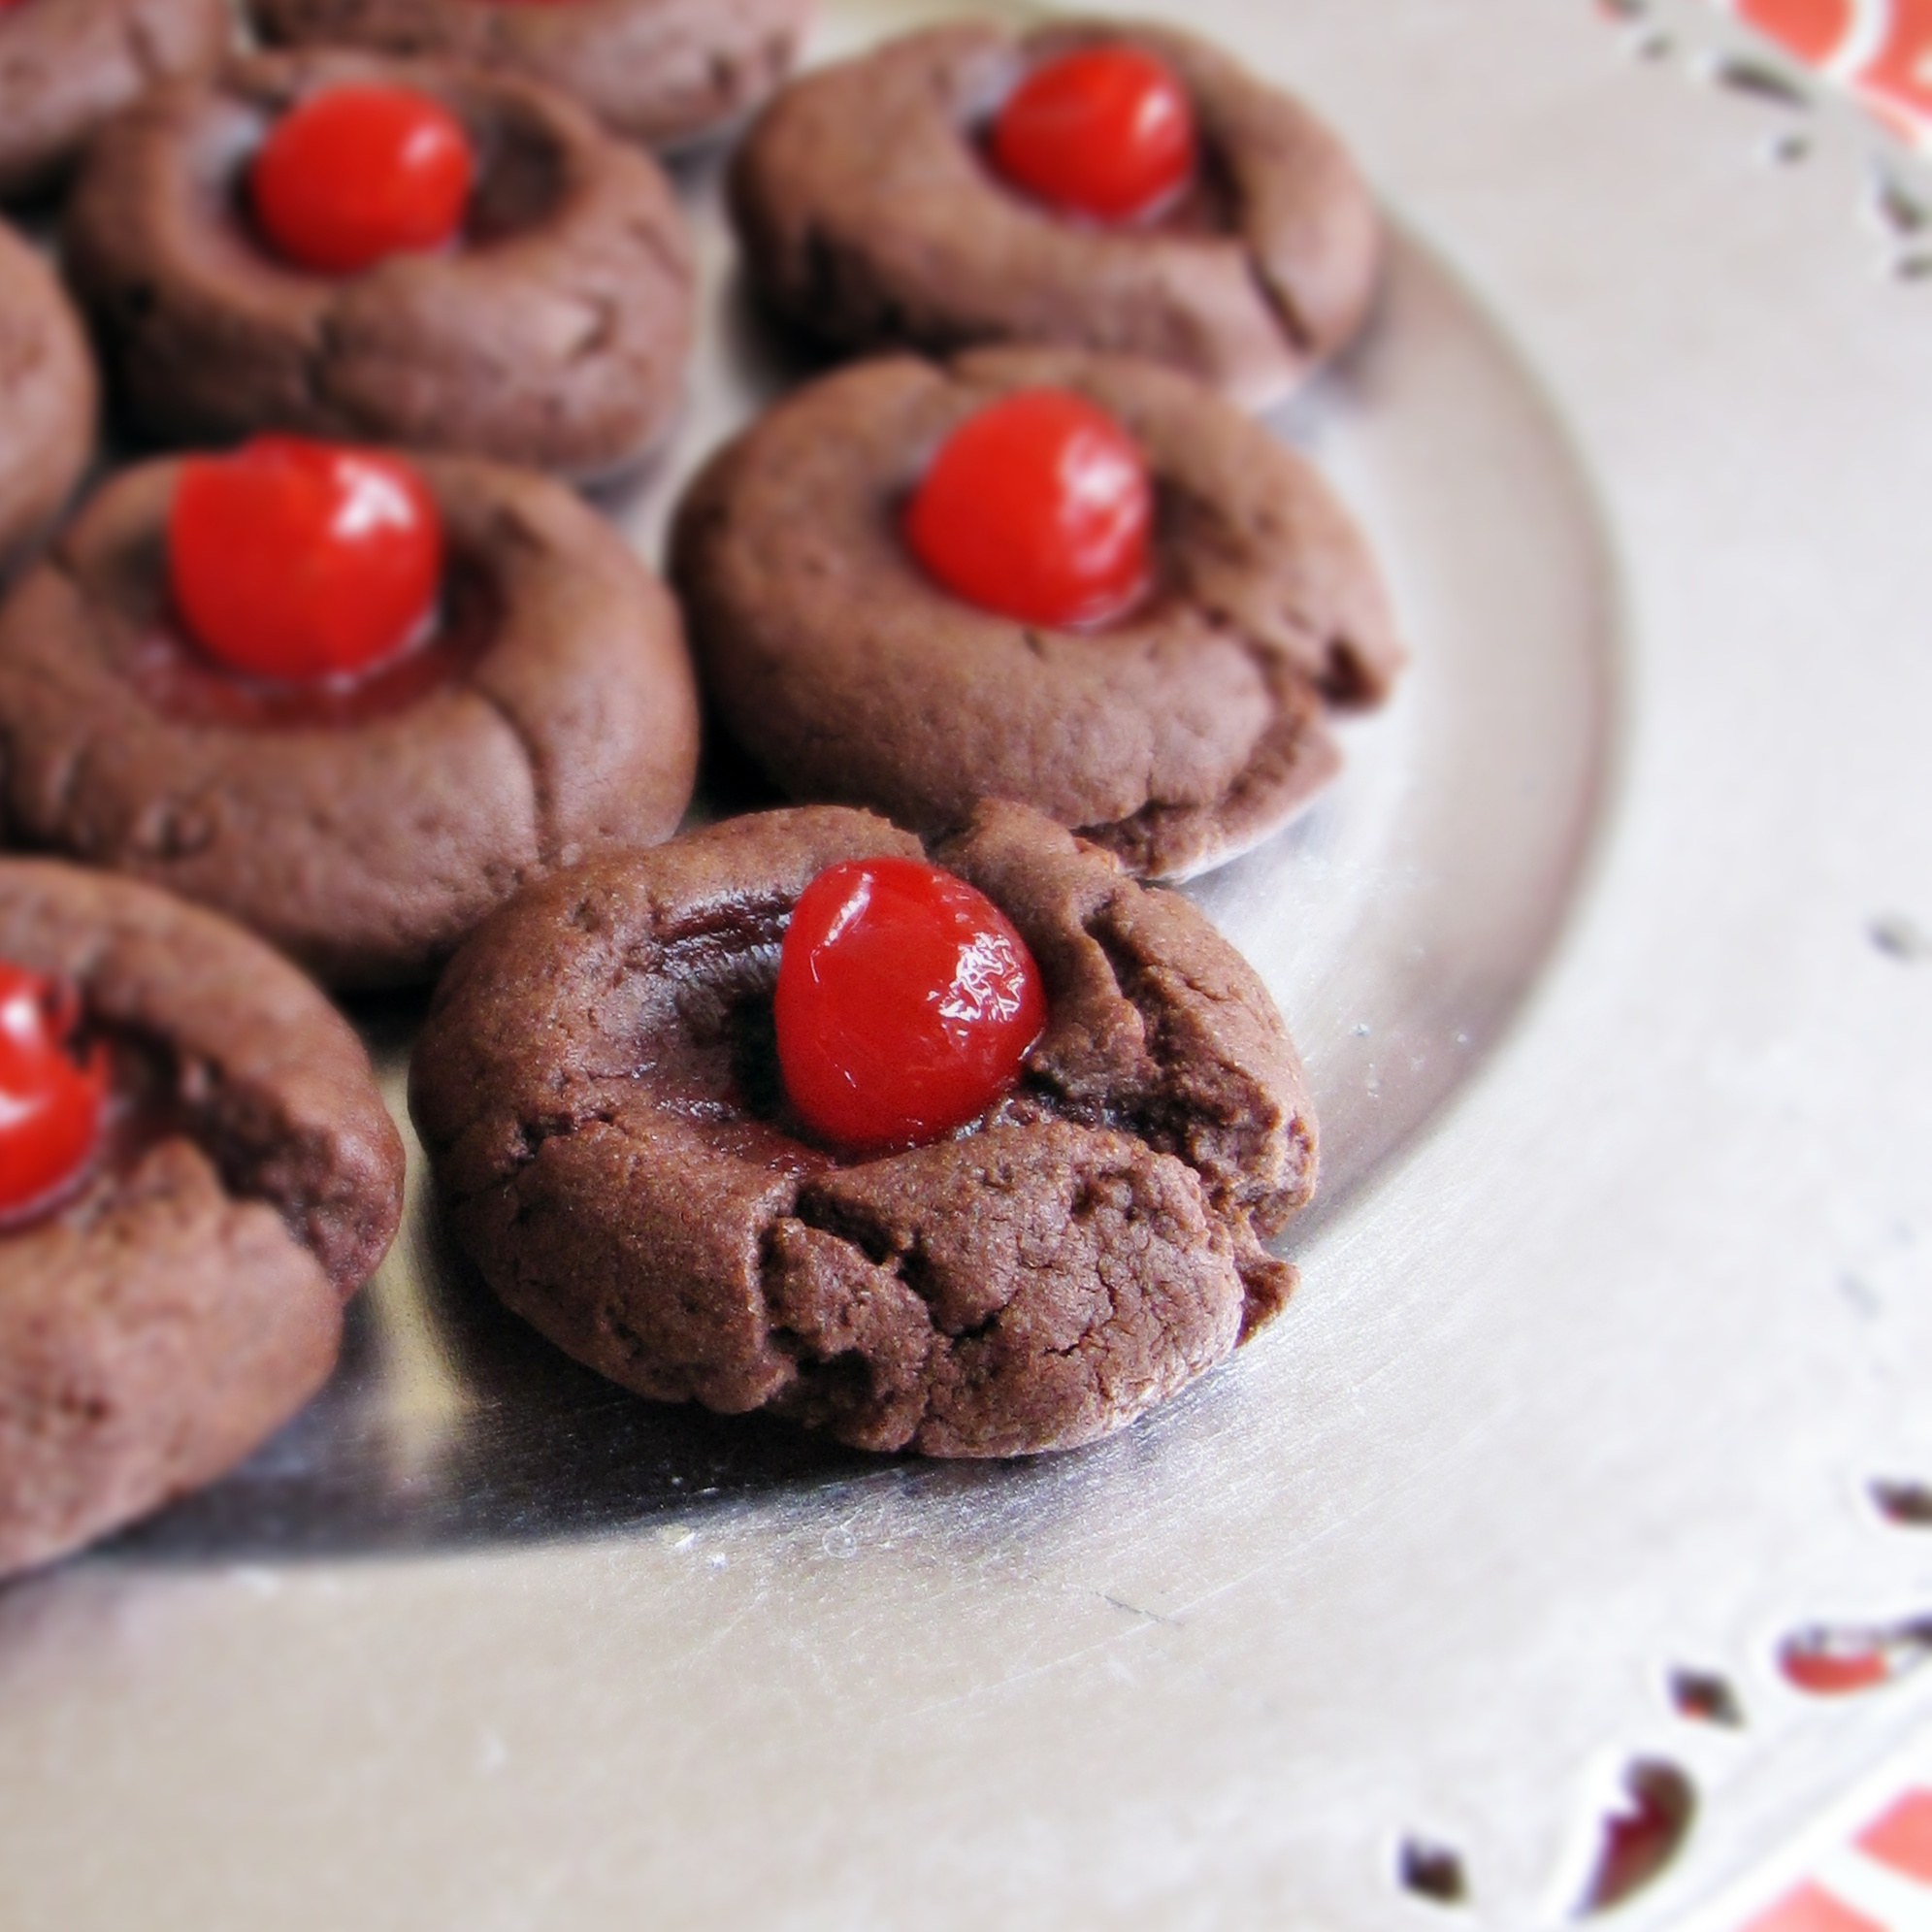 Chocolate-Covered-Cherry Cookies - Katie at the Kitchen Door